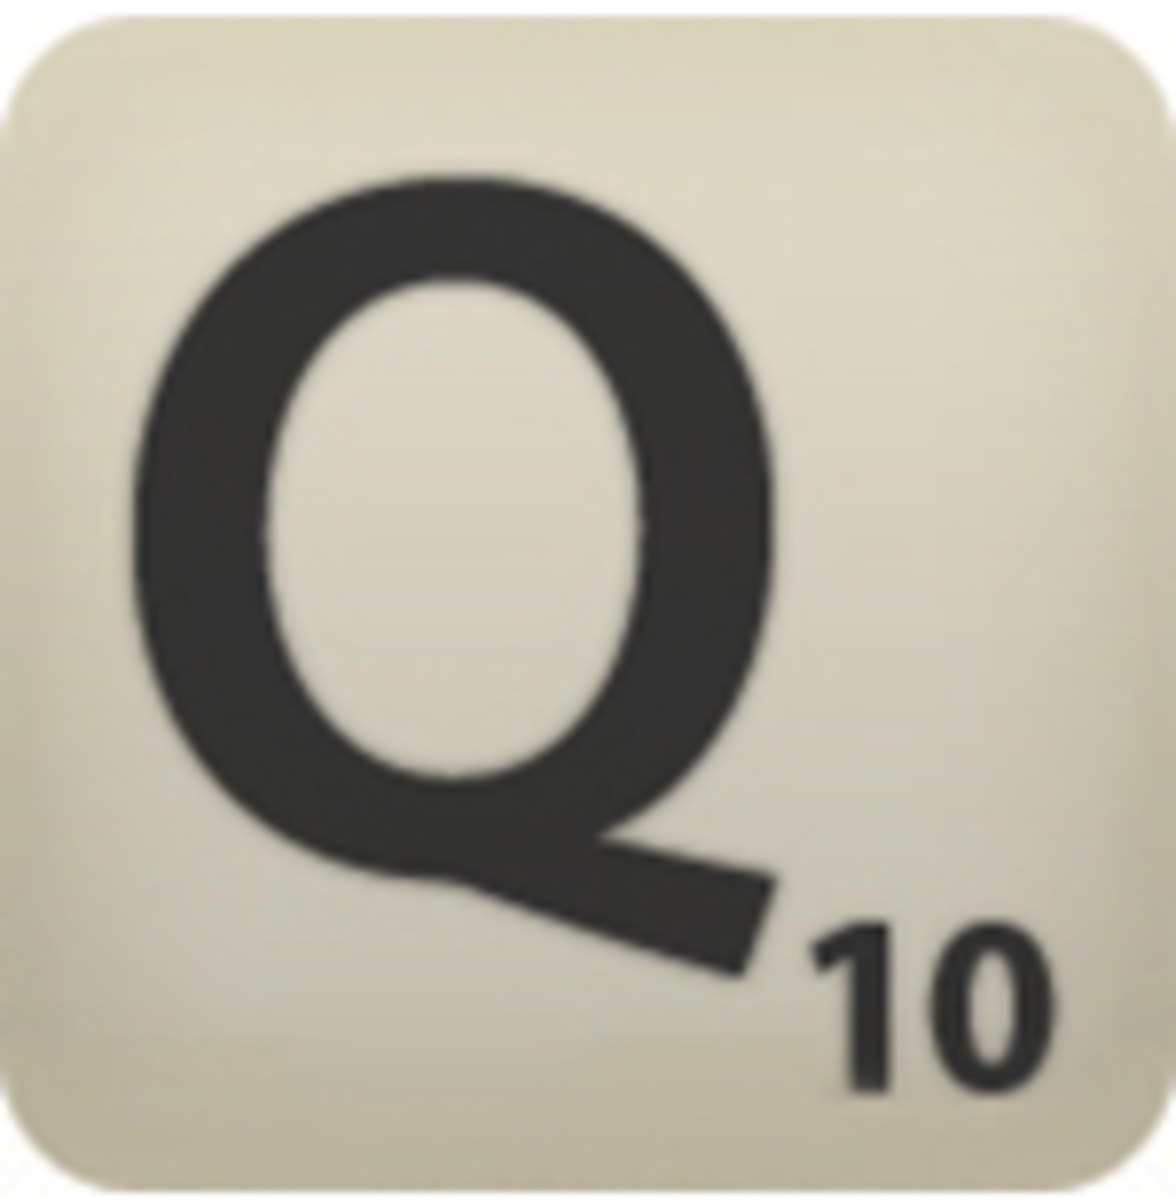 Q10 is a completely freeware writing software!